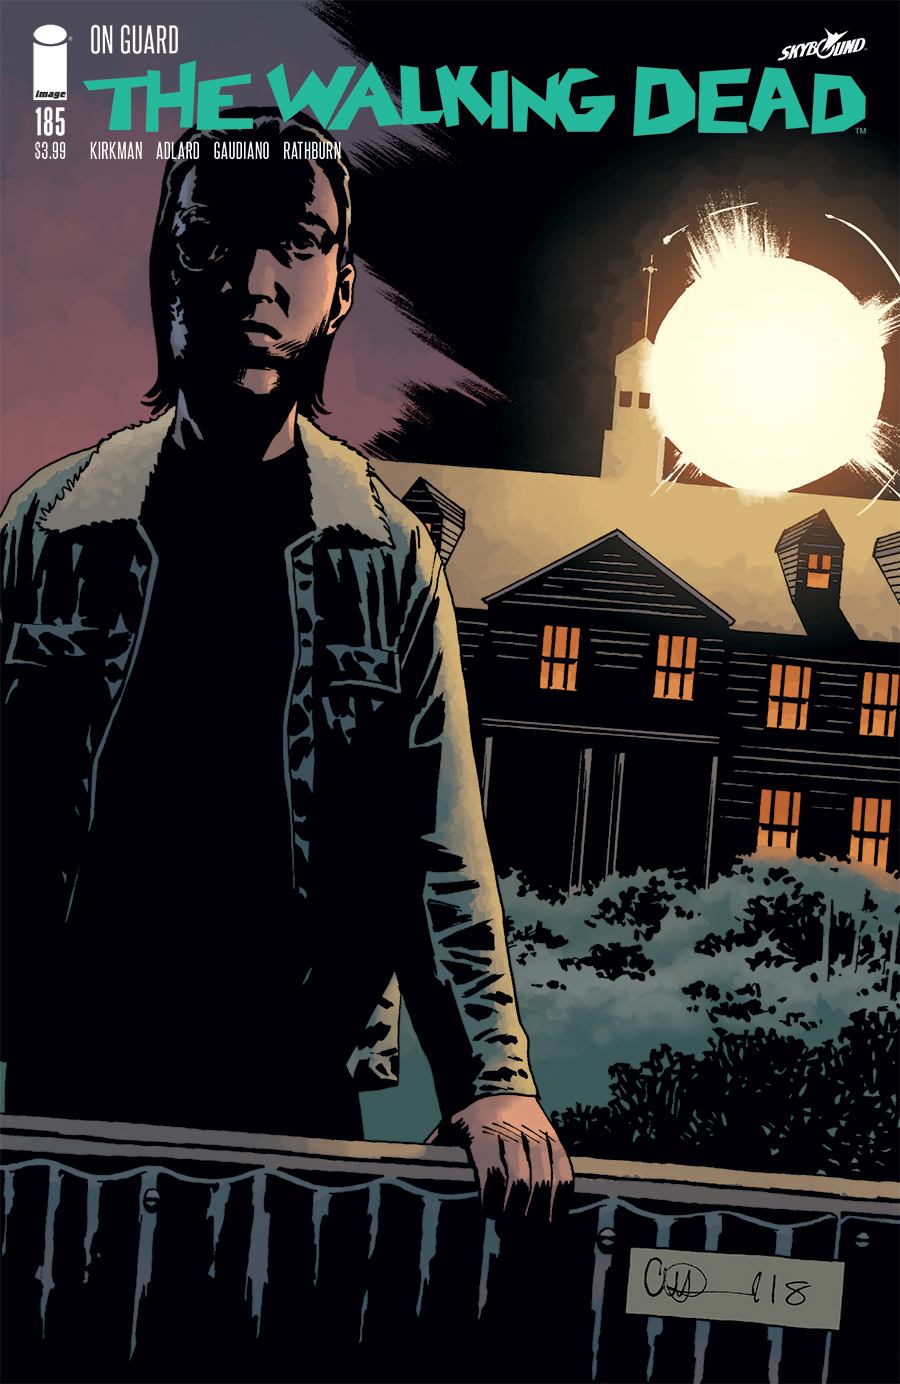 The Walking Dead Comic Issue 185